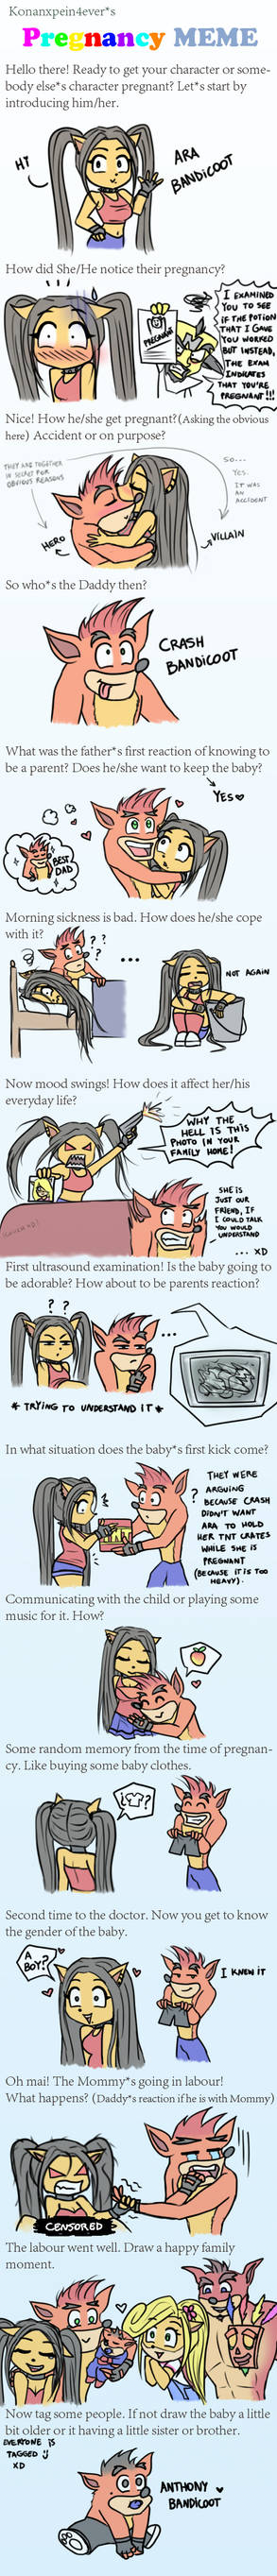 Pregnancy meme - Ara Bandicoot x Crash Bandicoot